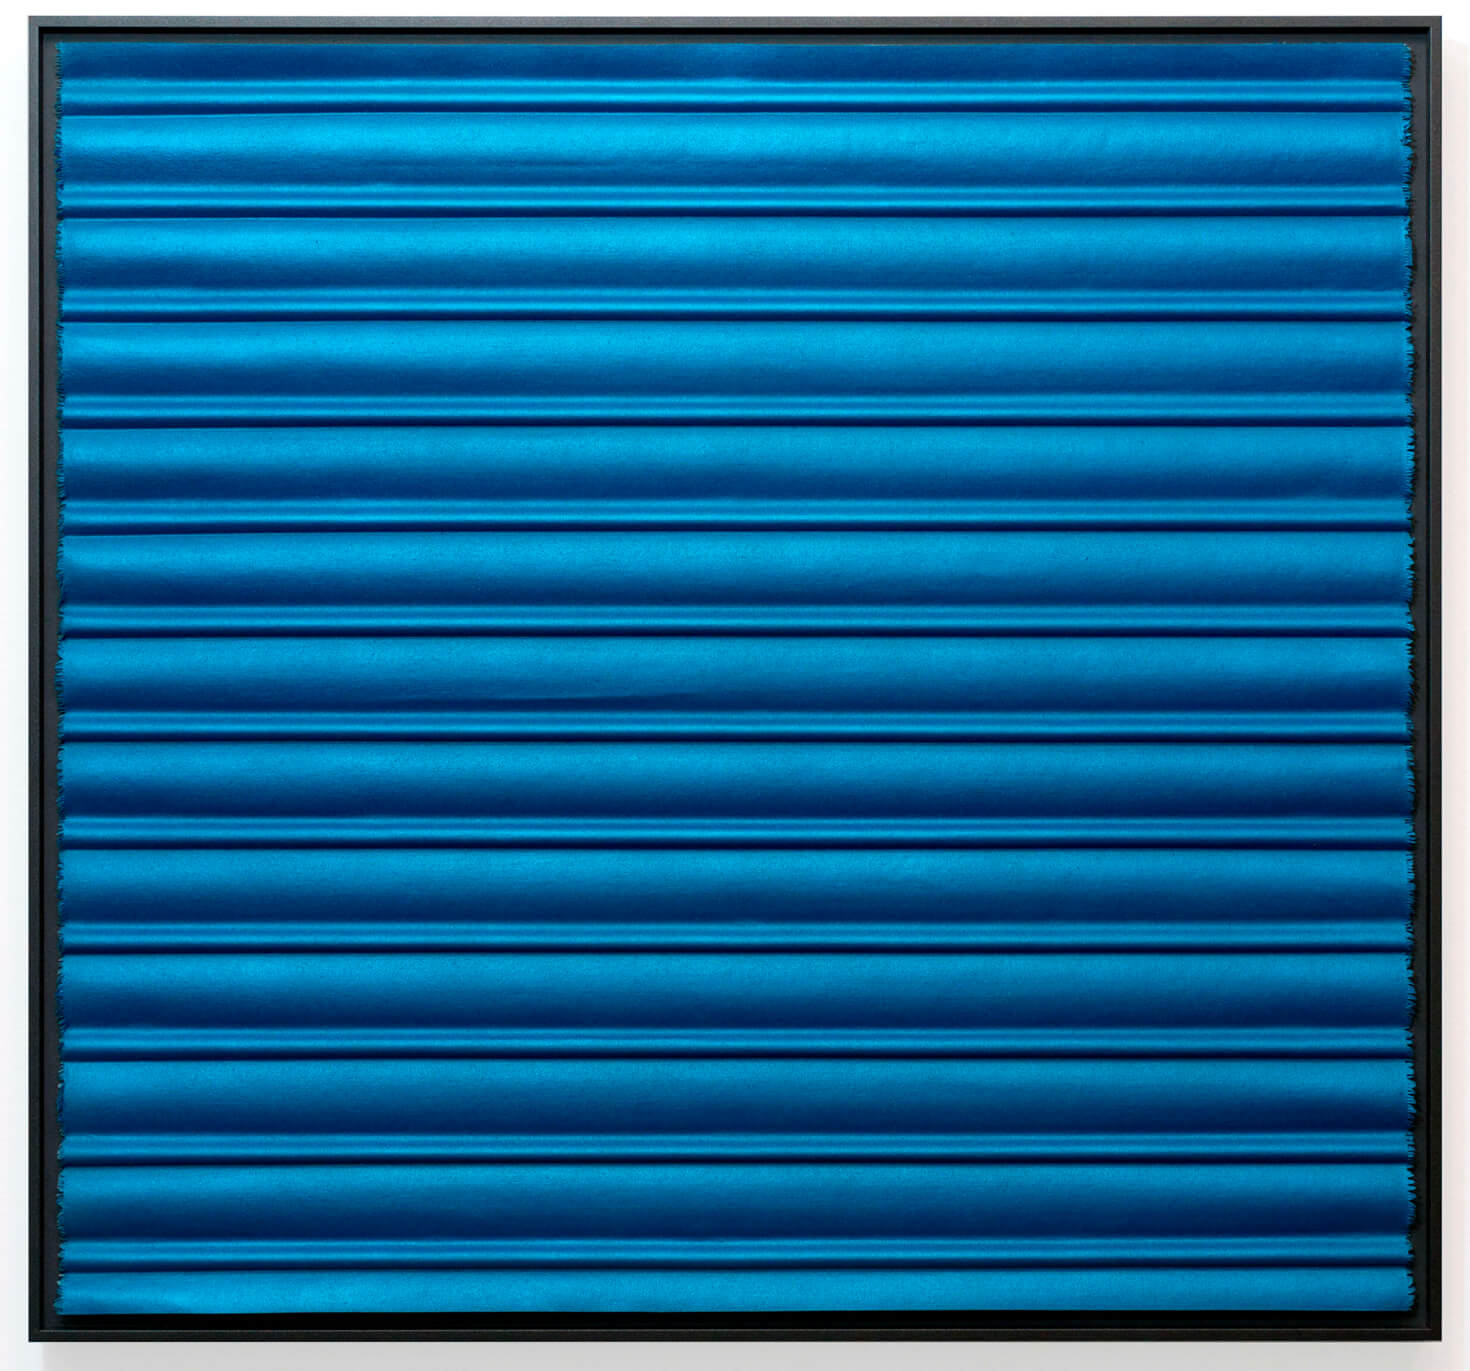 Persiana Azul, 2018. Intaglio, pintura industrial sobre lienzo. (Intaglio, industrial paint on canvas) 65 x 70 cm (26 x 28 inches)